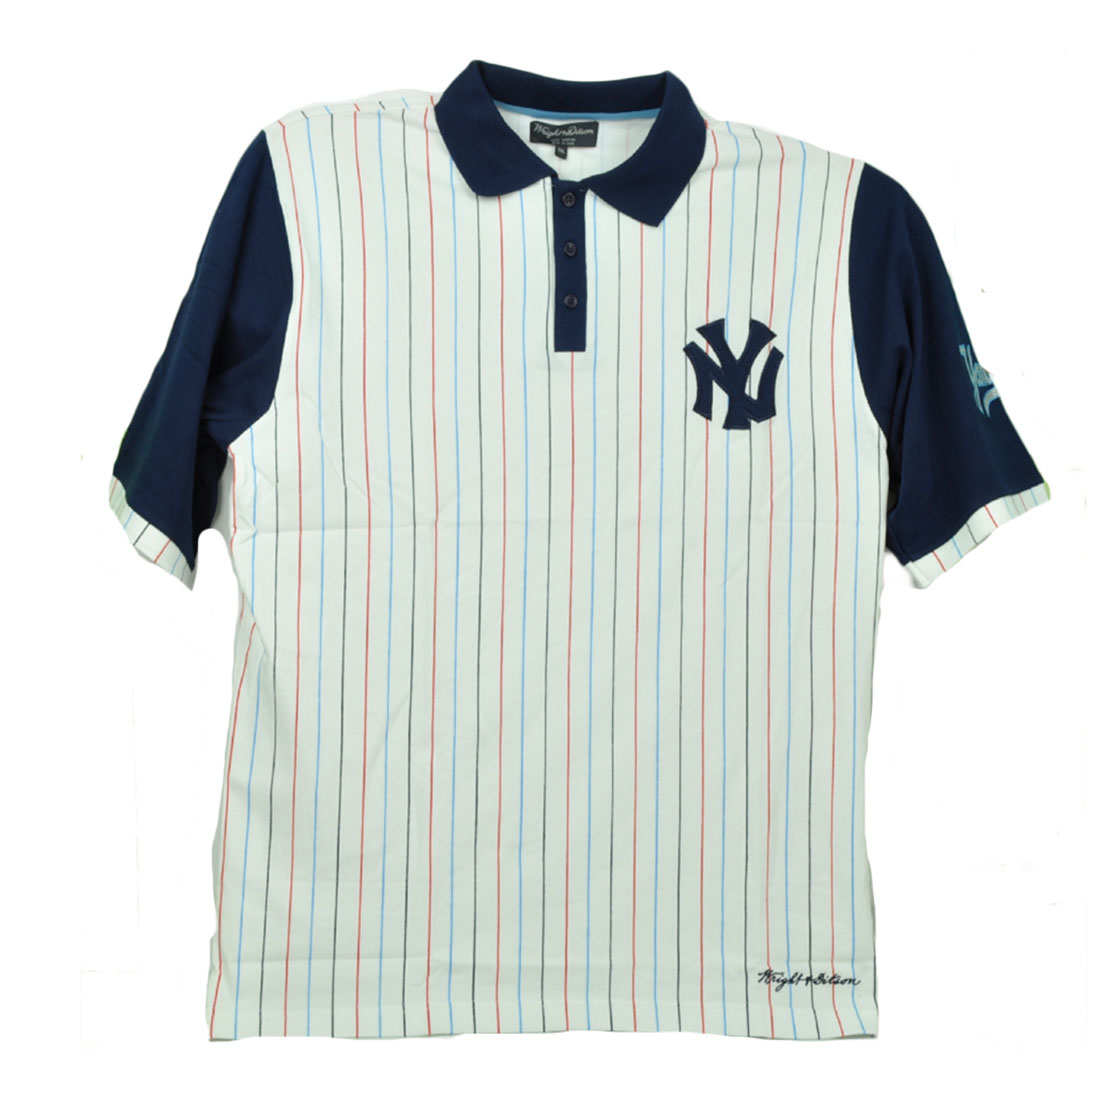 best service 9a4d4 eff98 Details about Wright Ditson New York Yankees Contrasting Striped Polo Shirt  White Navy Mens